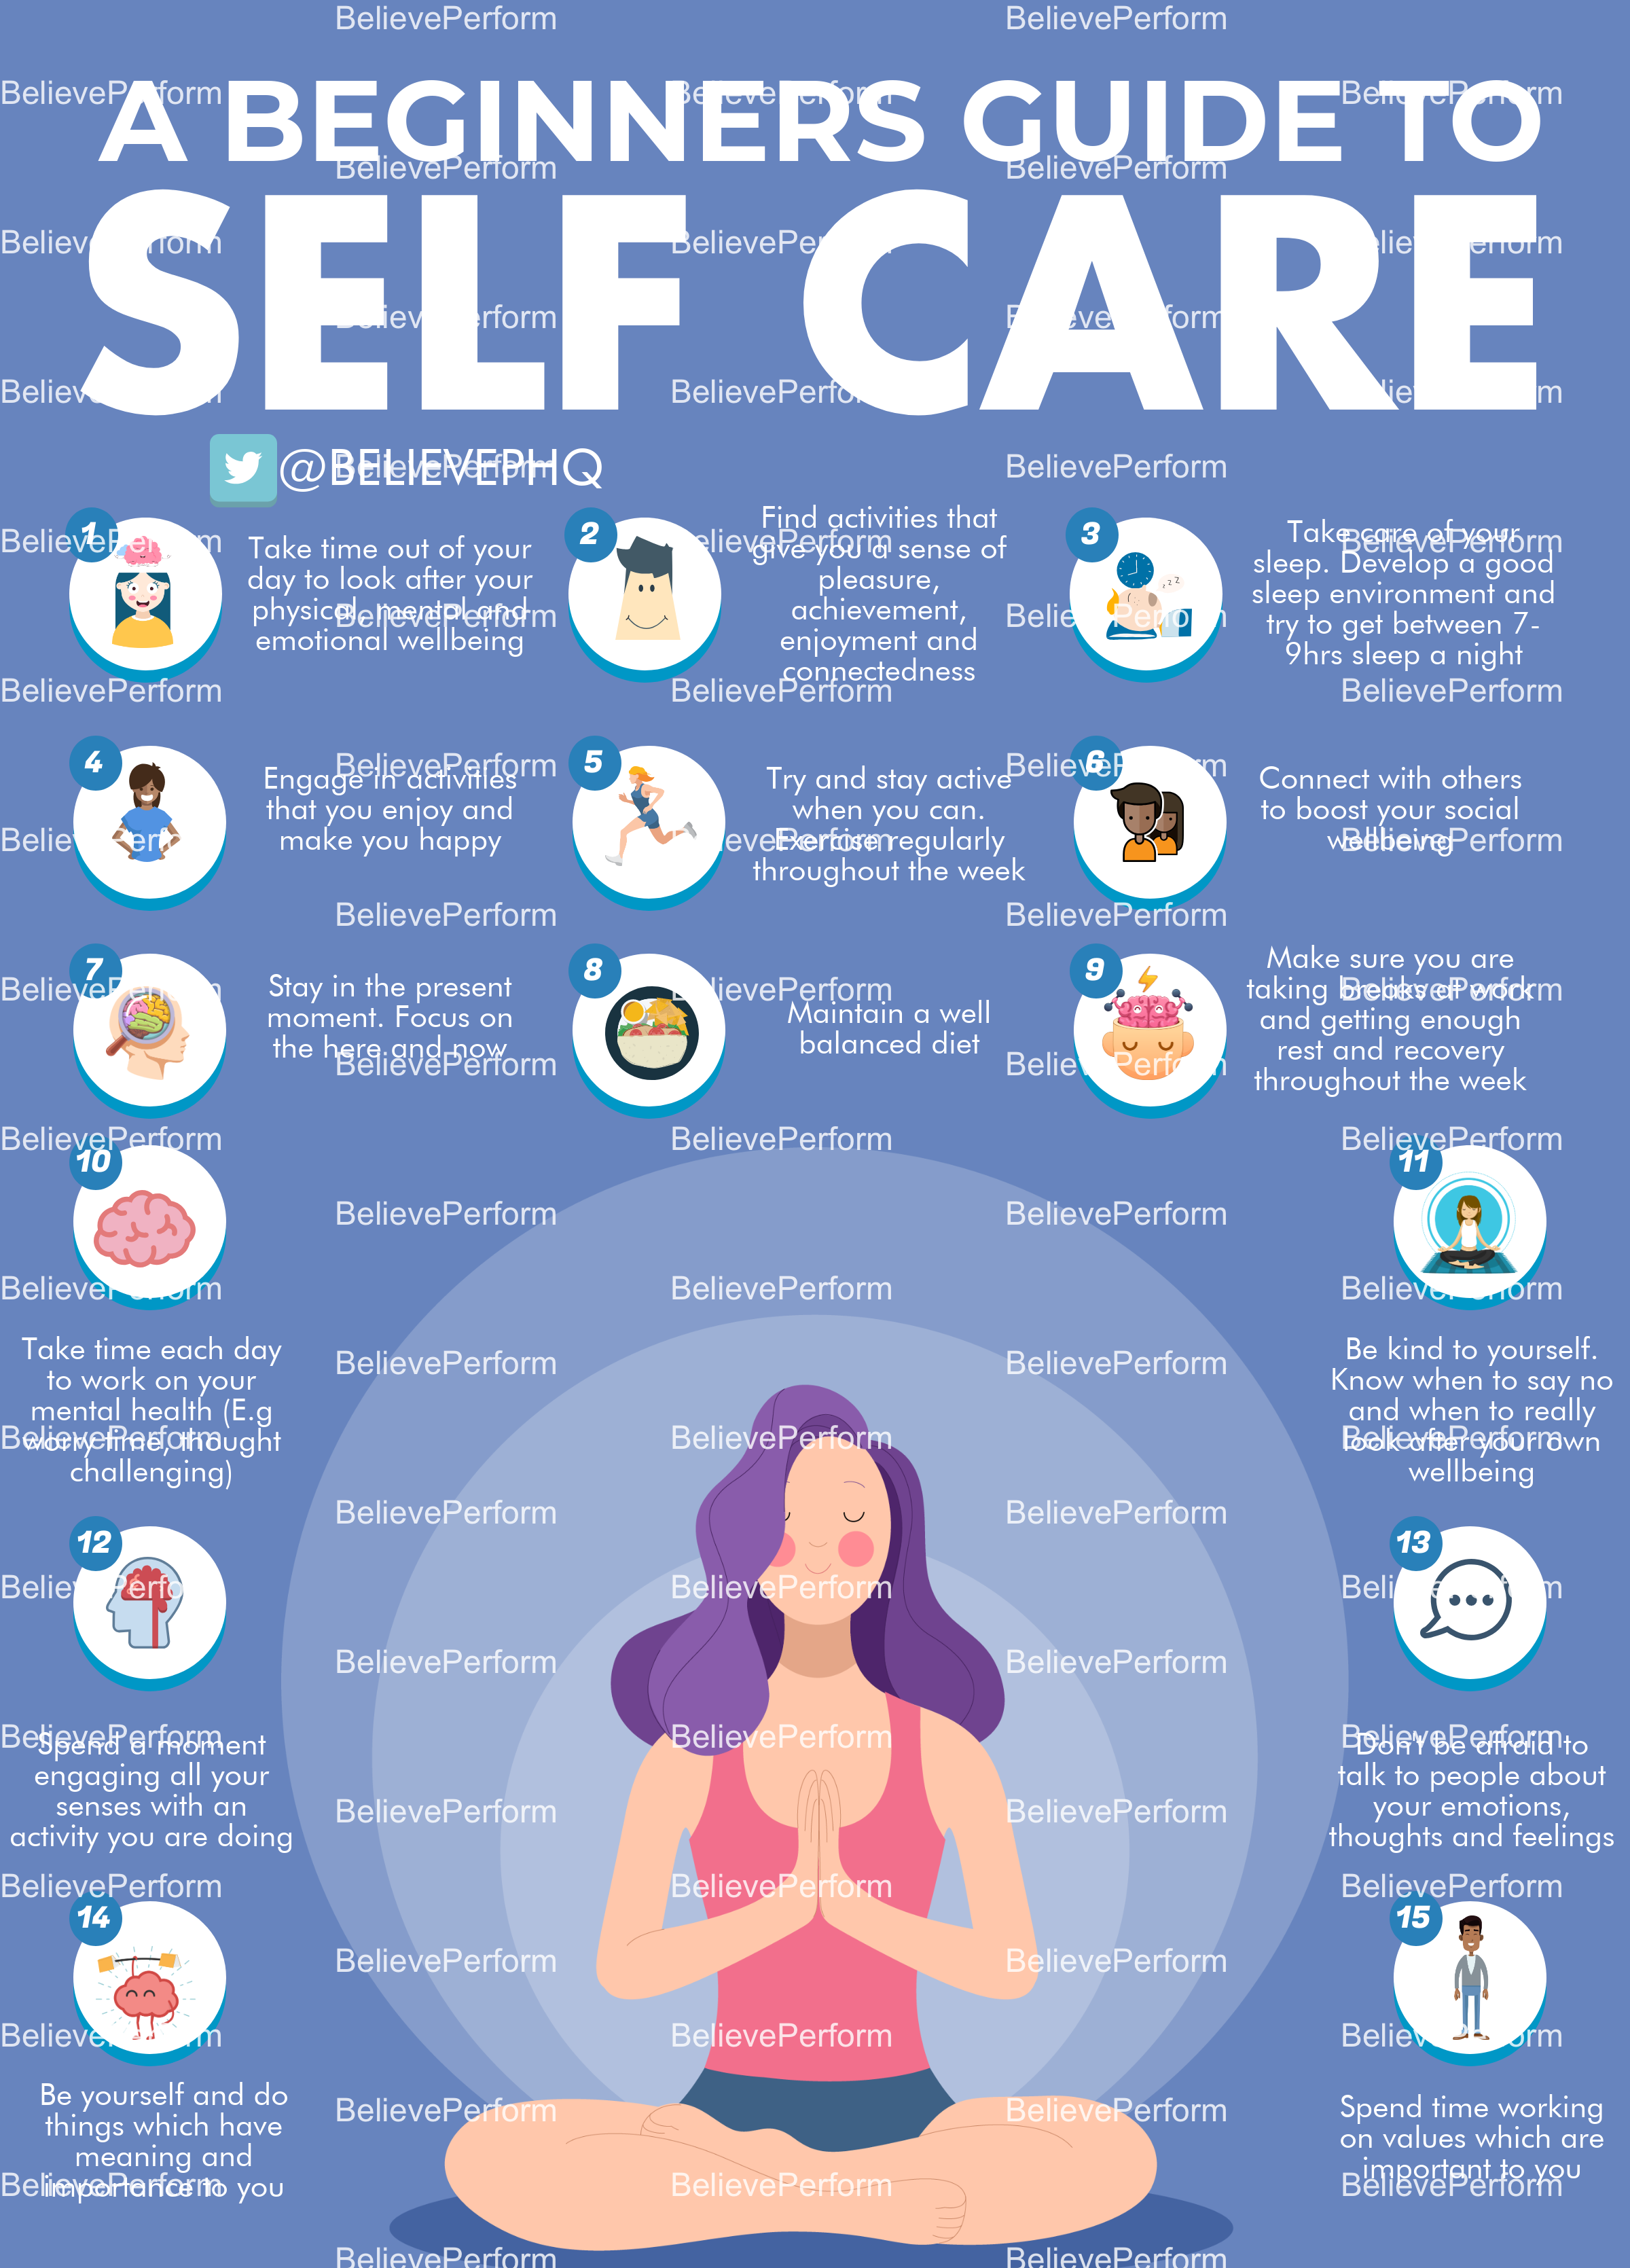 A beginners guide to self care